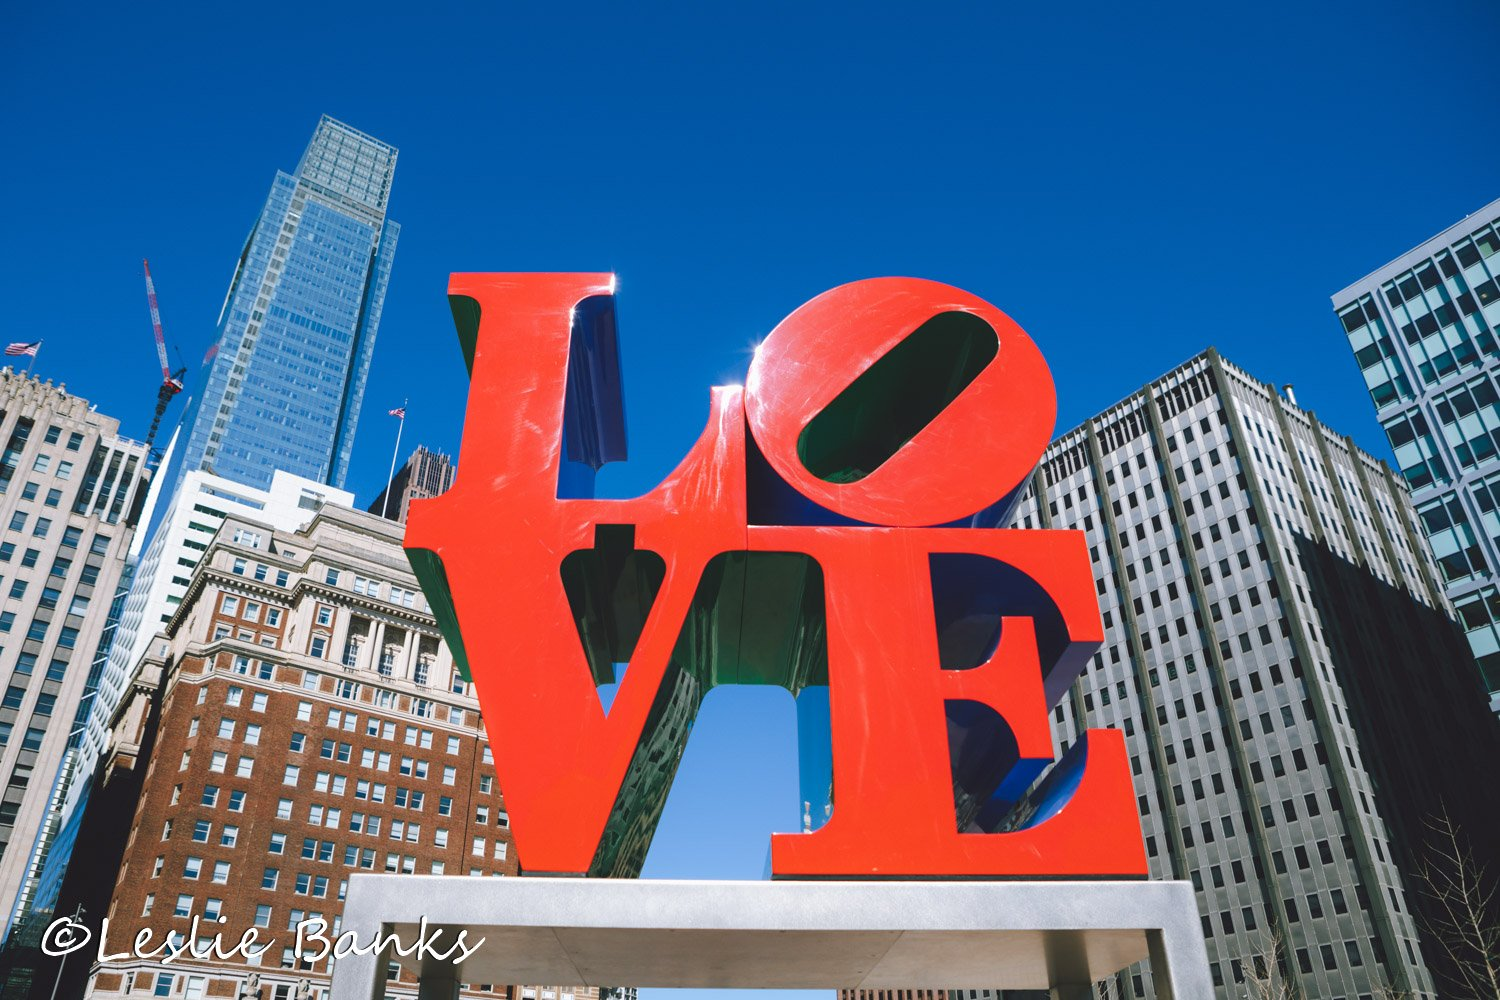 Love Sculpture in Philadelphia